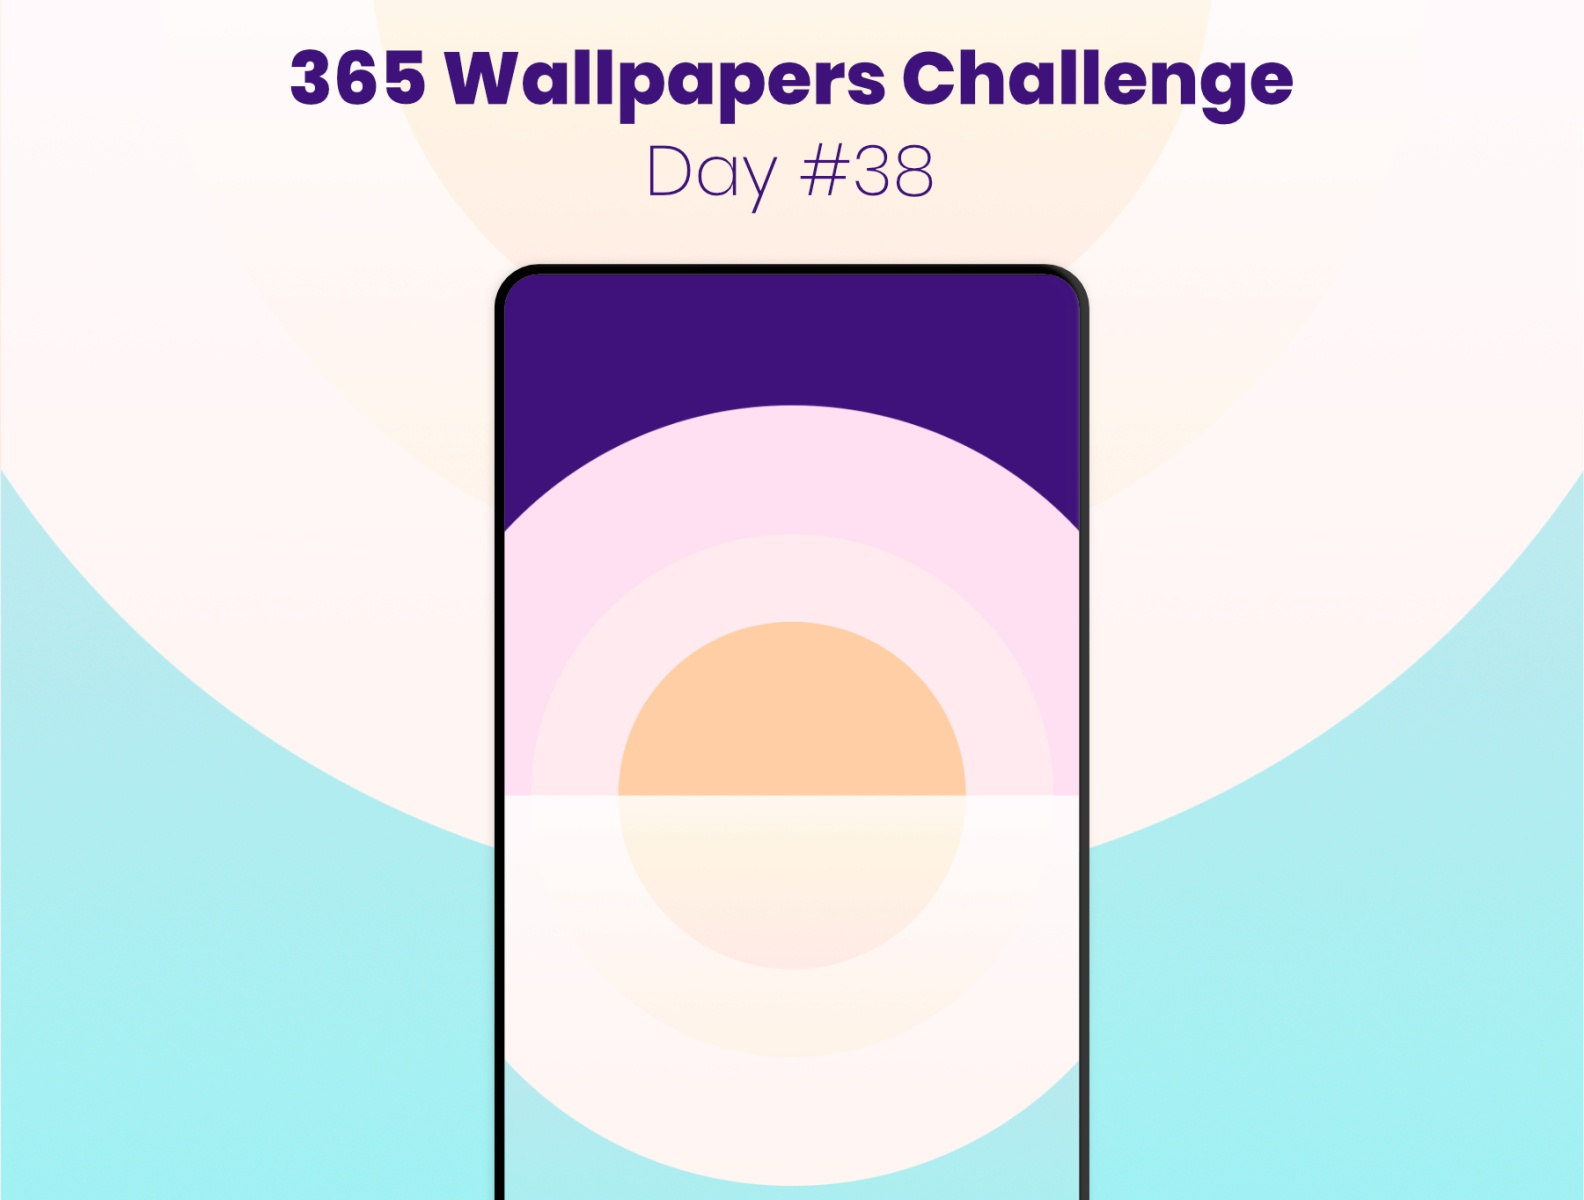 365 Wallpapers Challenge   Day 38 by Reda Lazri on Dribbble 1584x1200